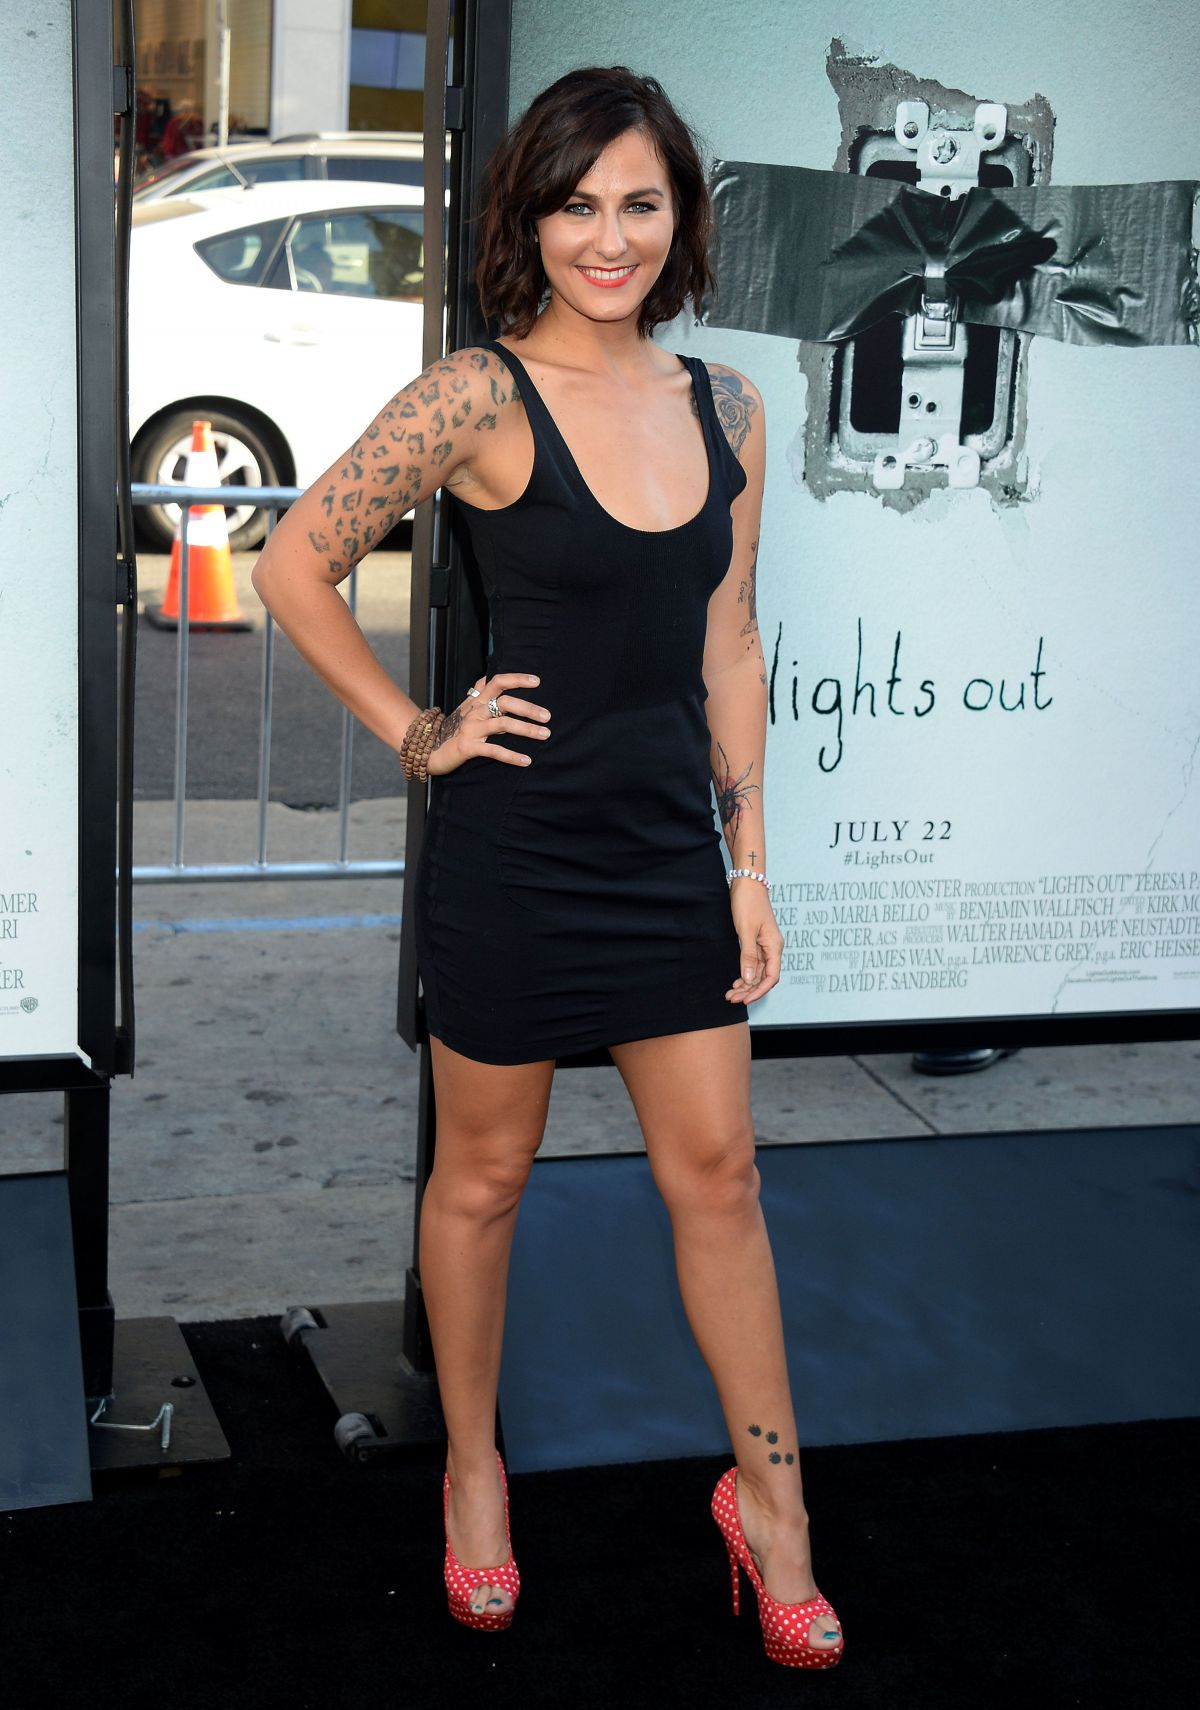 Pictures Scout Taylor-Compton nude photos 2019